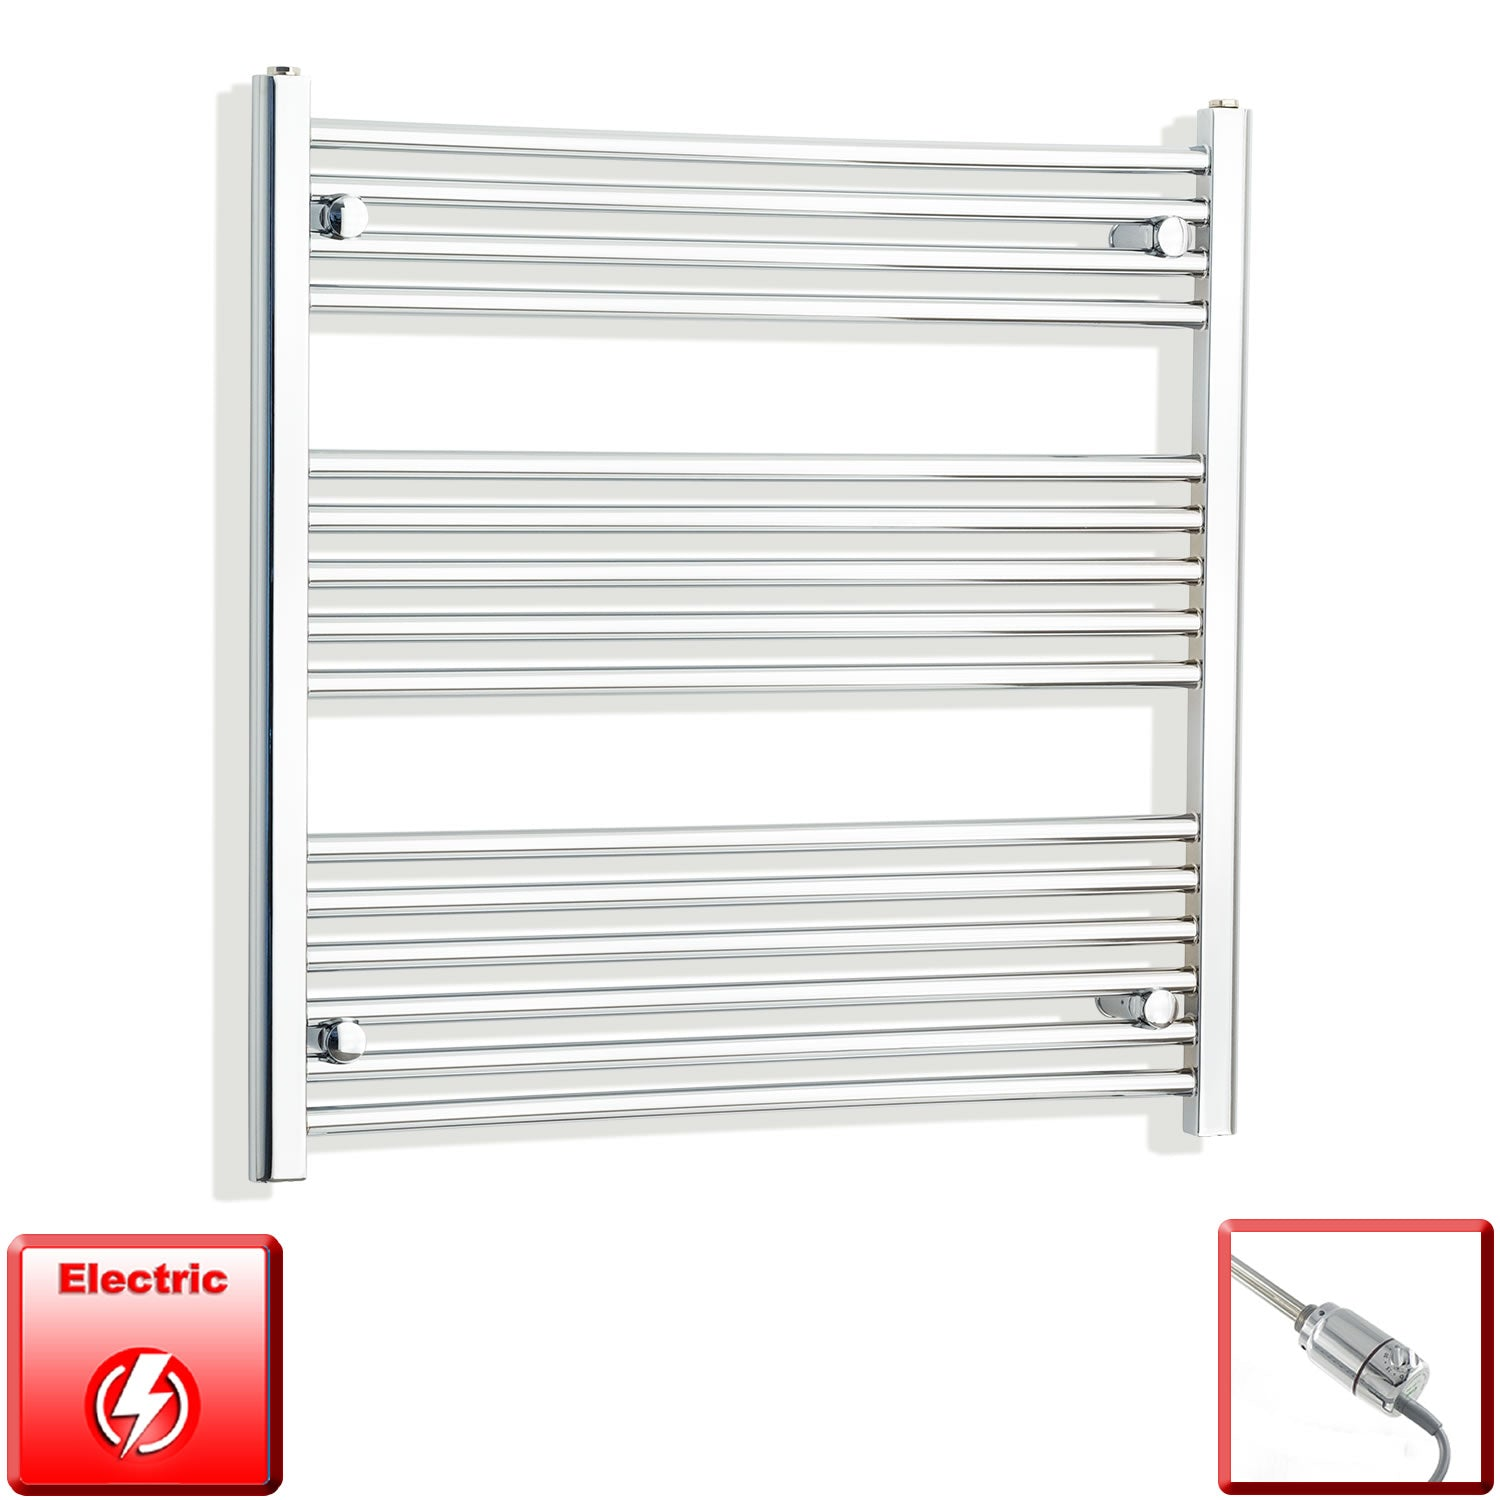 700mm Wide 800mm High Pre-Filled Chrome Electric Towel Rail Radiator With Thermostatic GT Element